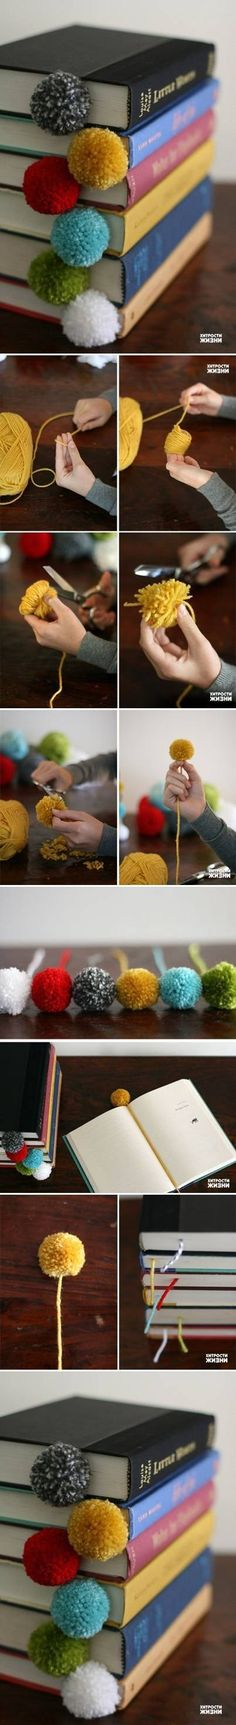 DIY Fancy Pom Poms Bookmark DIY Projects | UsefulDIY.com